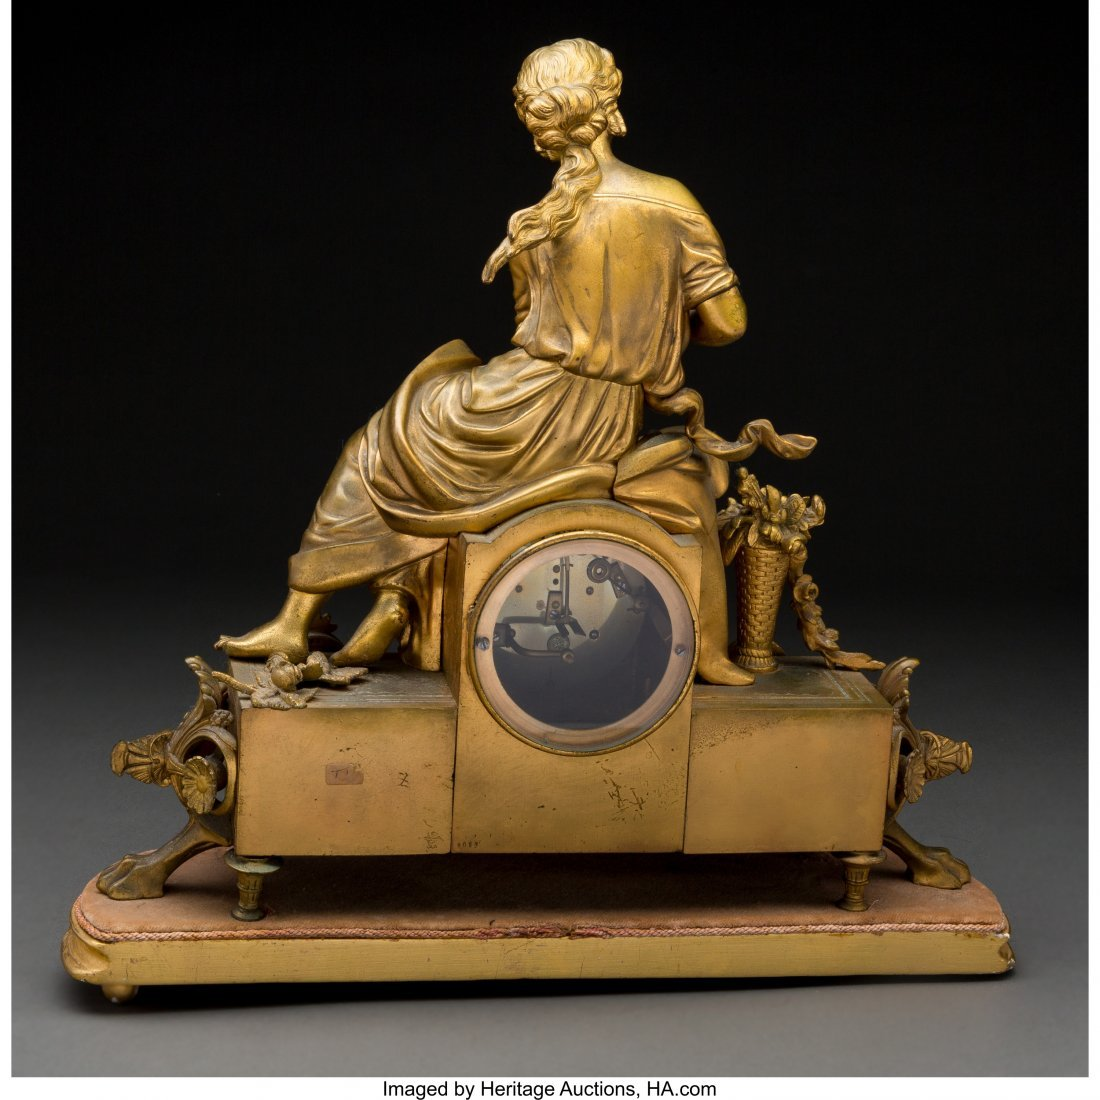 61472: A French Louis XVI-Style GIlt Bronze and Porcela - 2